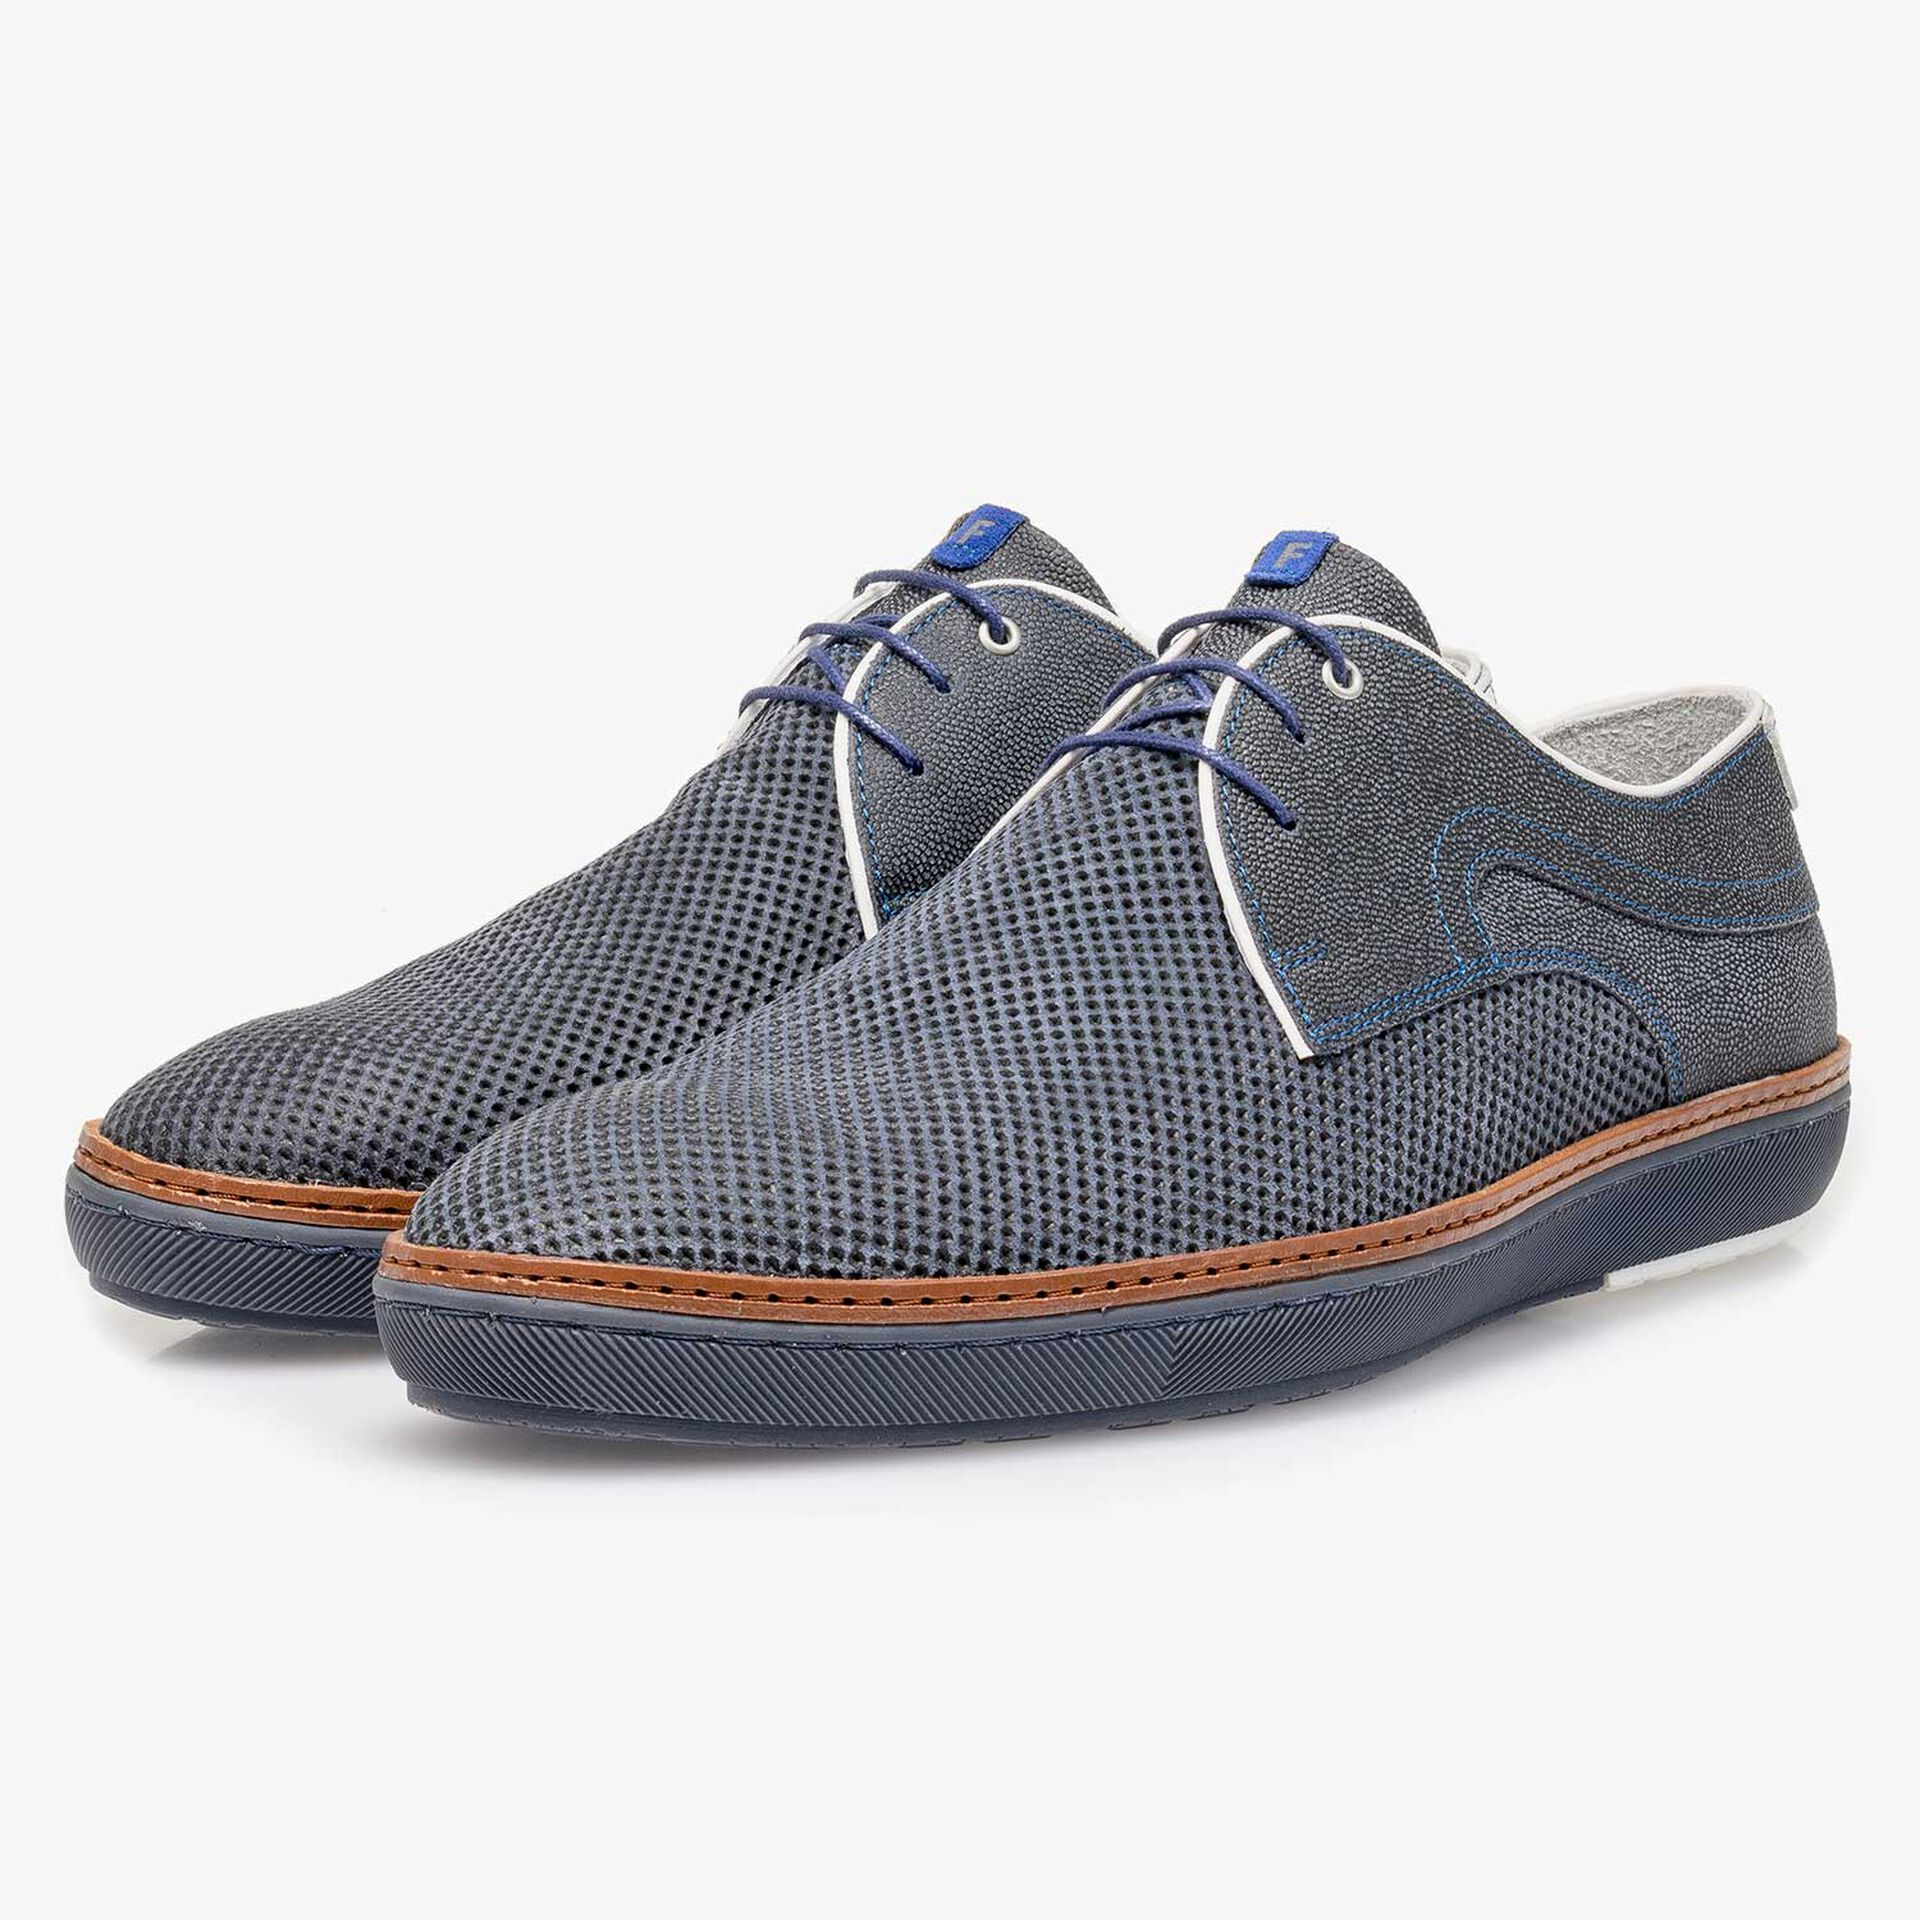 Blue suede leather lace shoe with a mini print